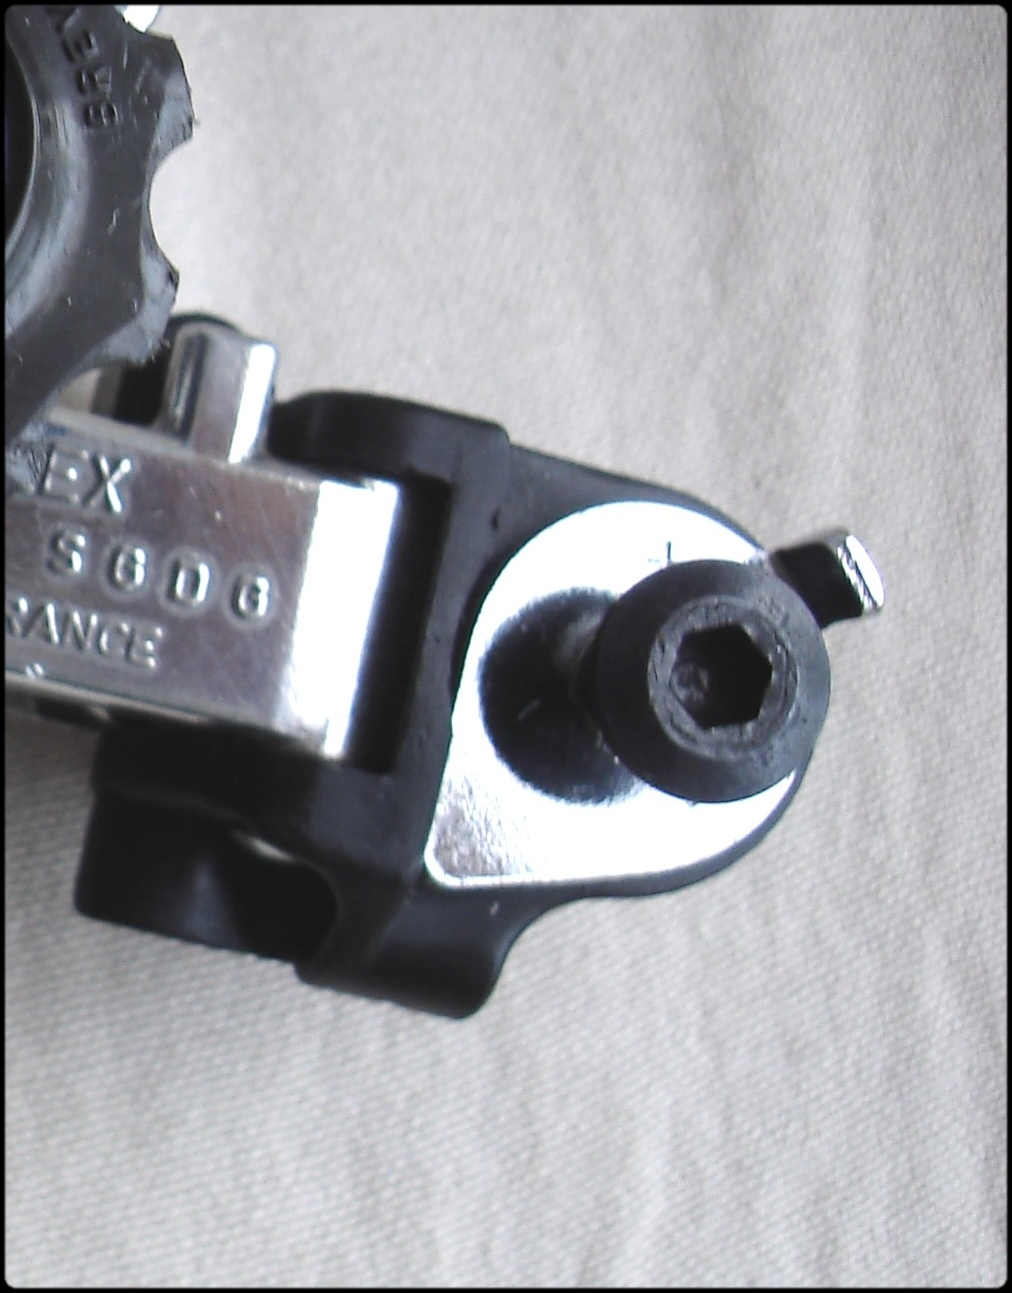 Simplex Lj 1000 Rear Derailleur Installation Peugeot Course Pb 12 Diagram To Remove The From Dropout Only Use Black Allen Bolt At Inner Face Of Tab As Shown In Photo Seen